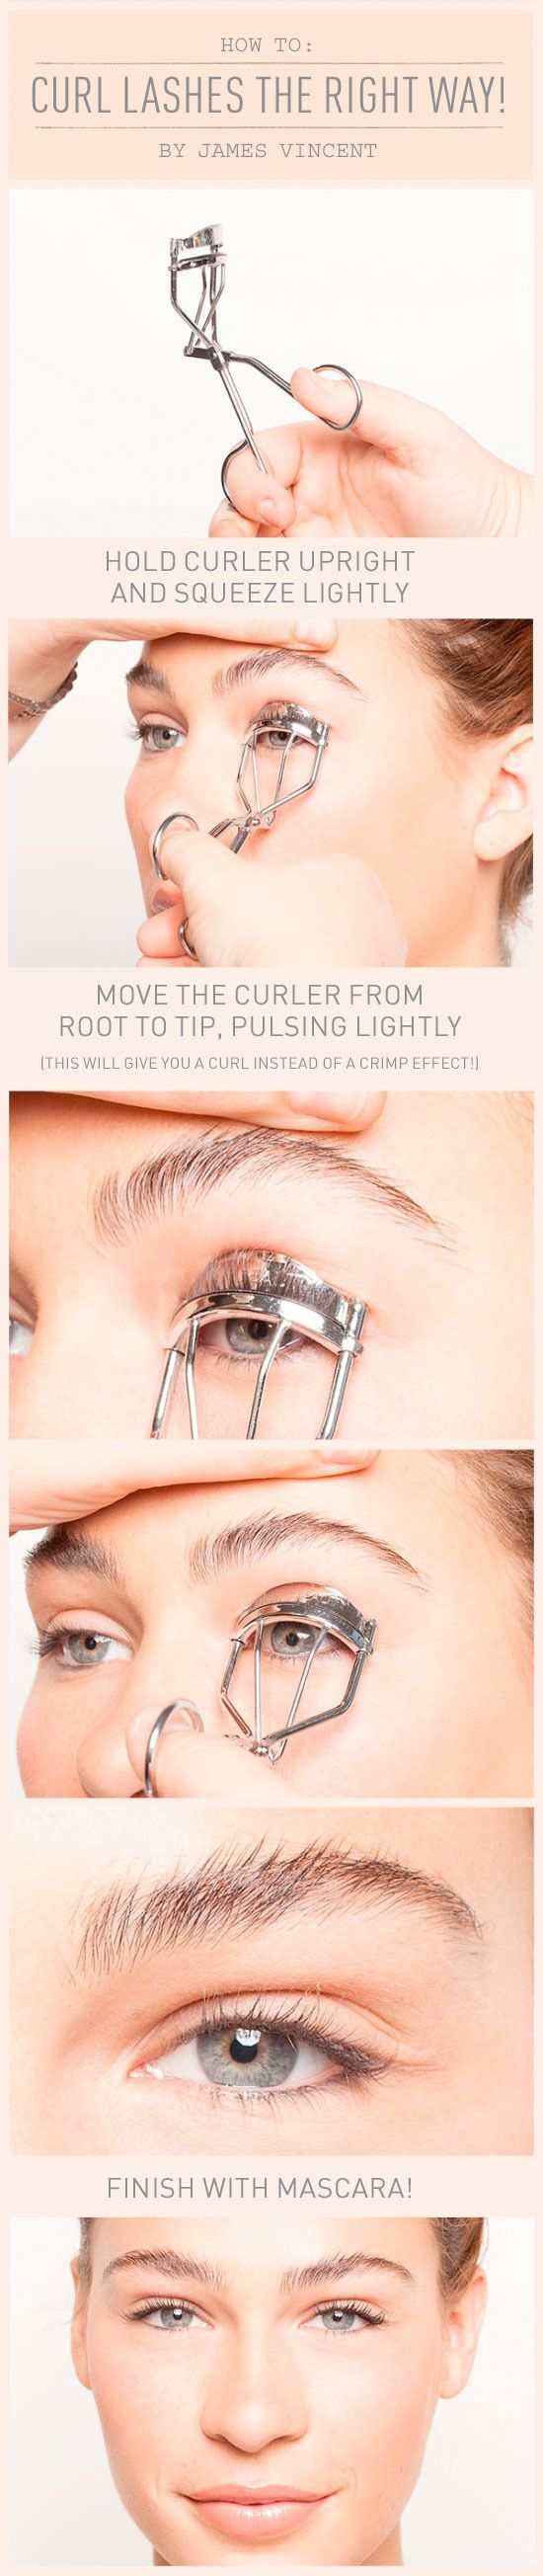 how to curl eyelashes and make them stay